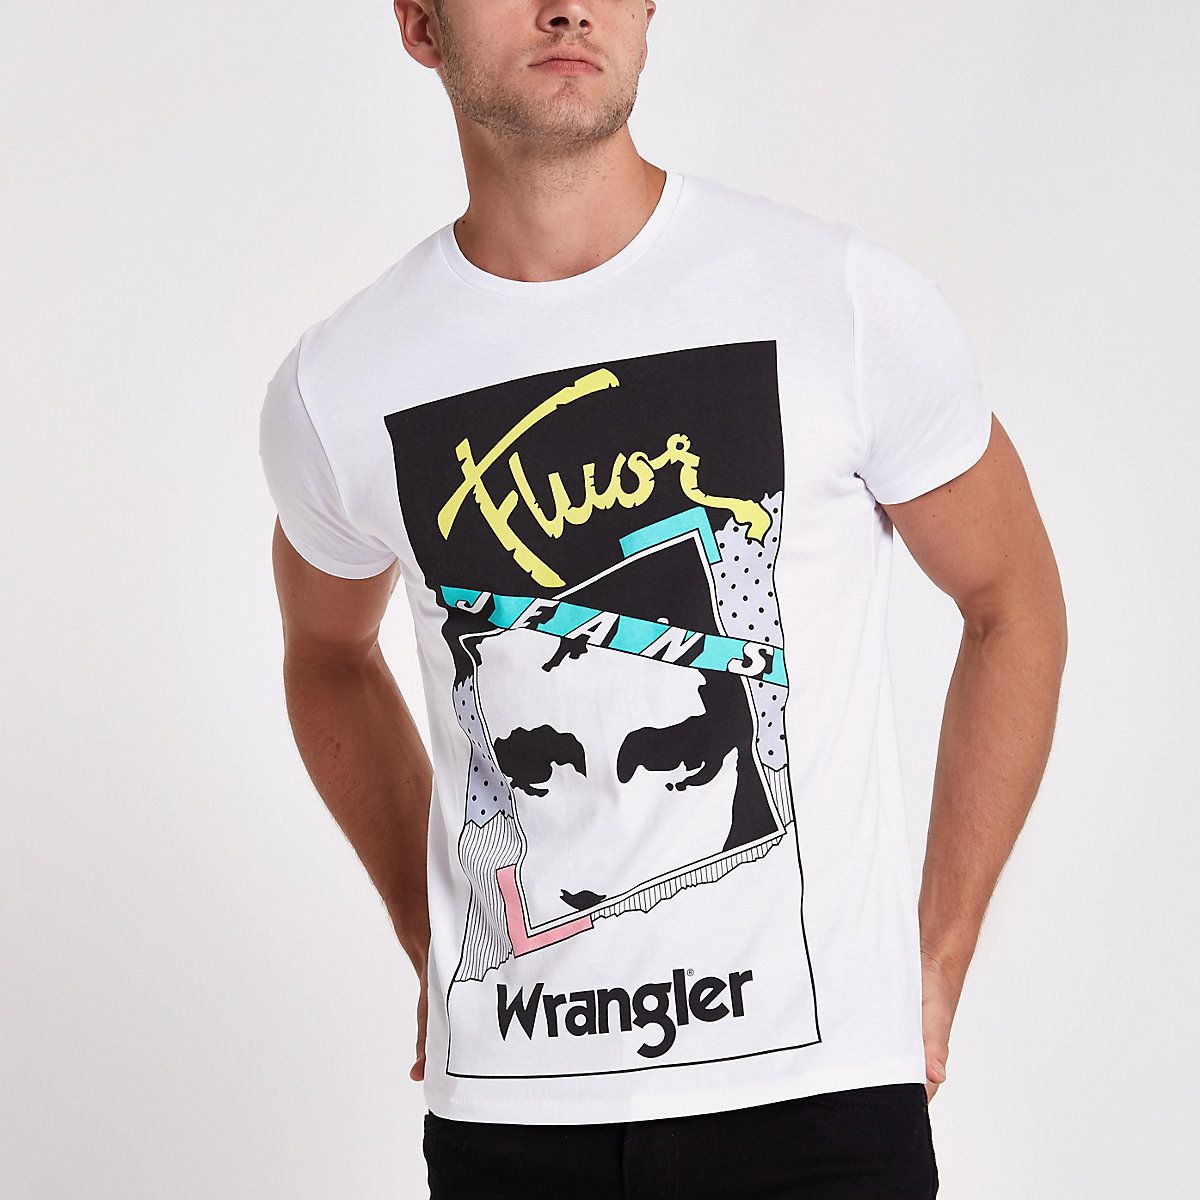 Wrangler white graphics T-shirt